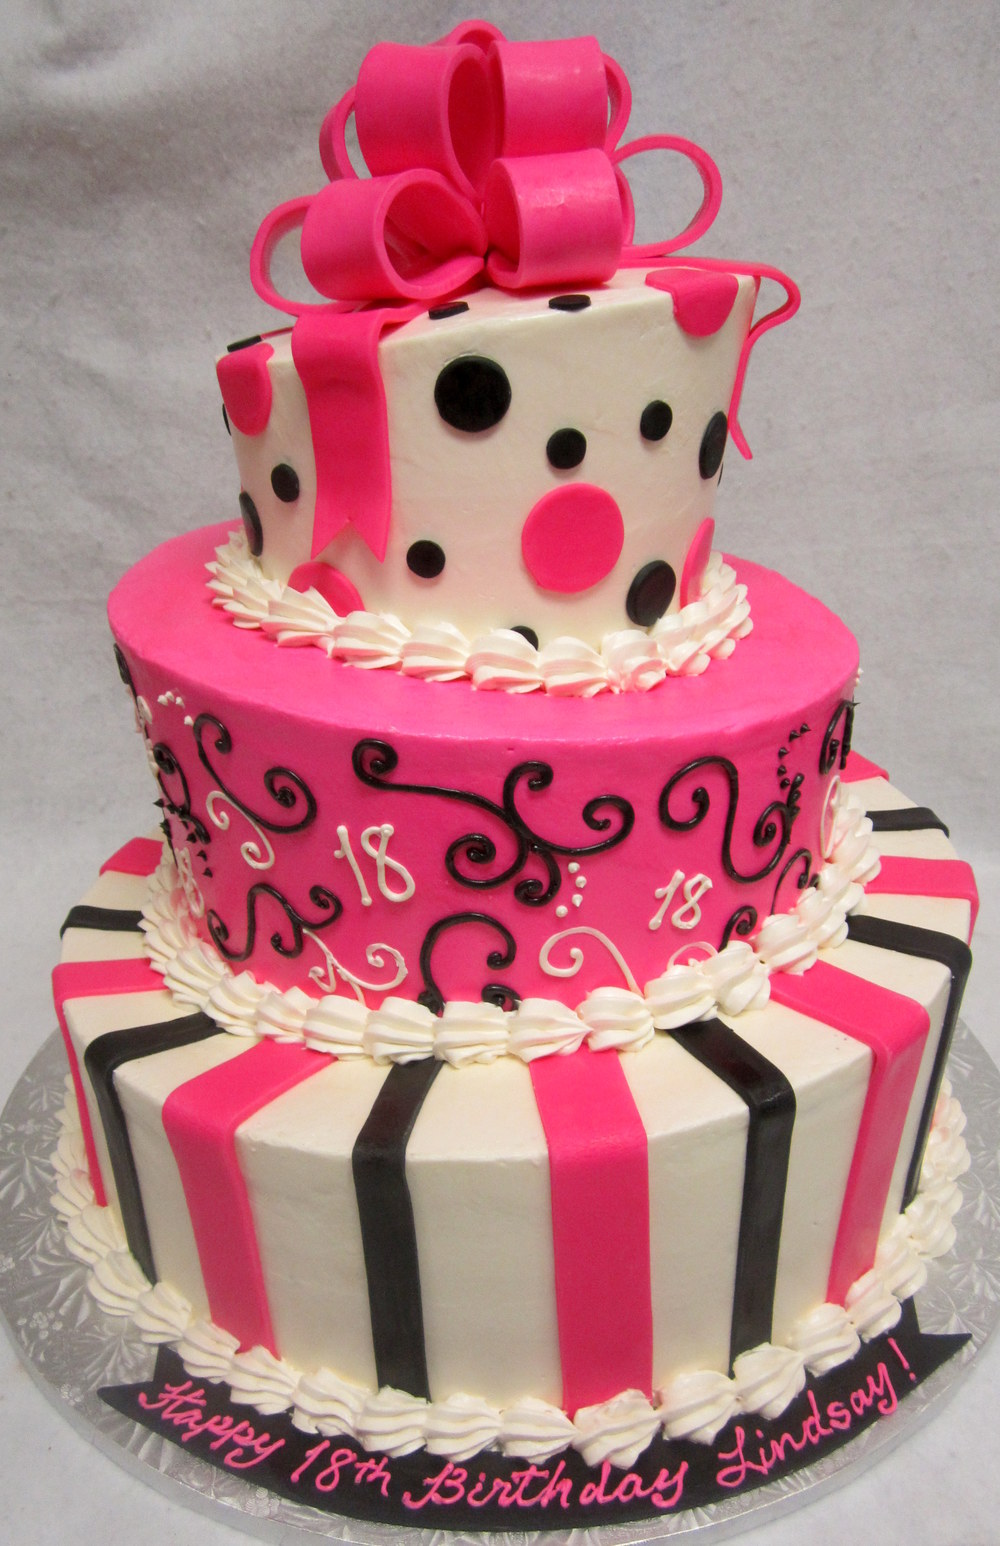 3 tier topsy turvy pink black 18th - Copy.jpg